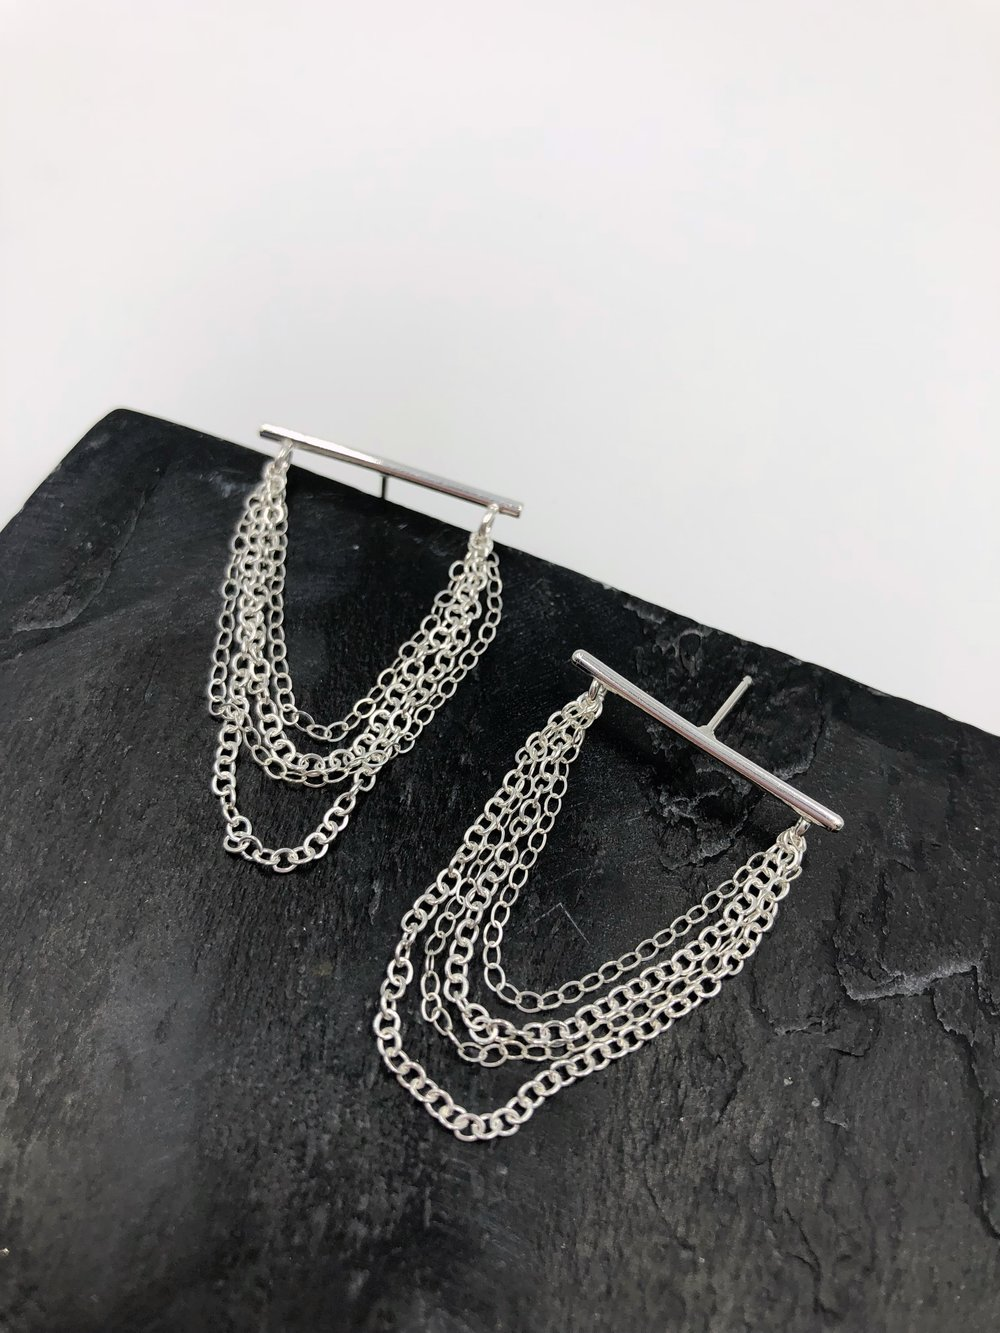 "Waterfall  Post Earrings  Item #: E2005  Size: Top Bar- 1""; Chain Drop- 1.5""  Wholesale Price: $19  Suggested Retail: $38"